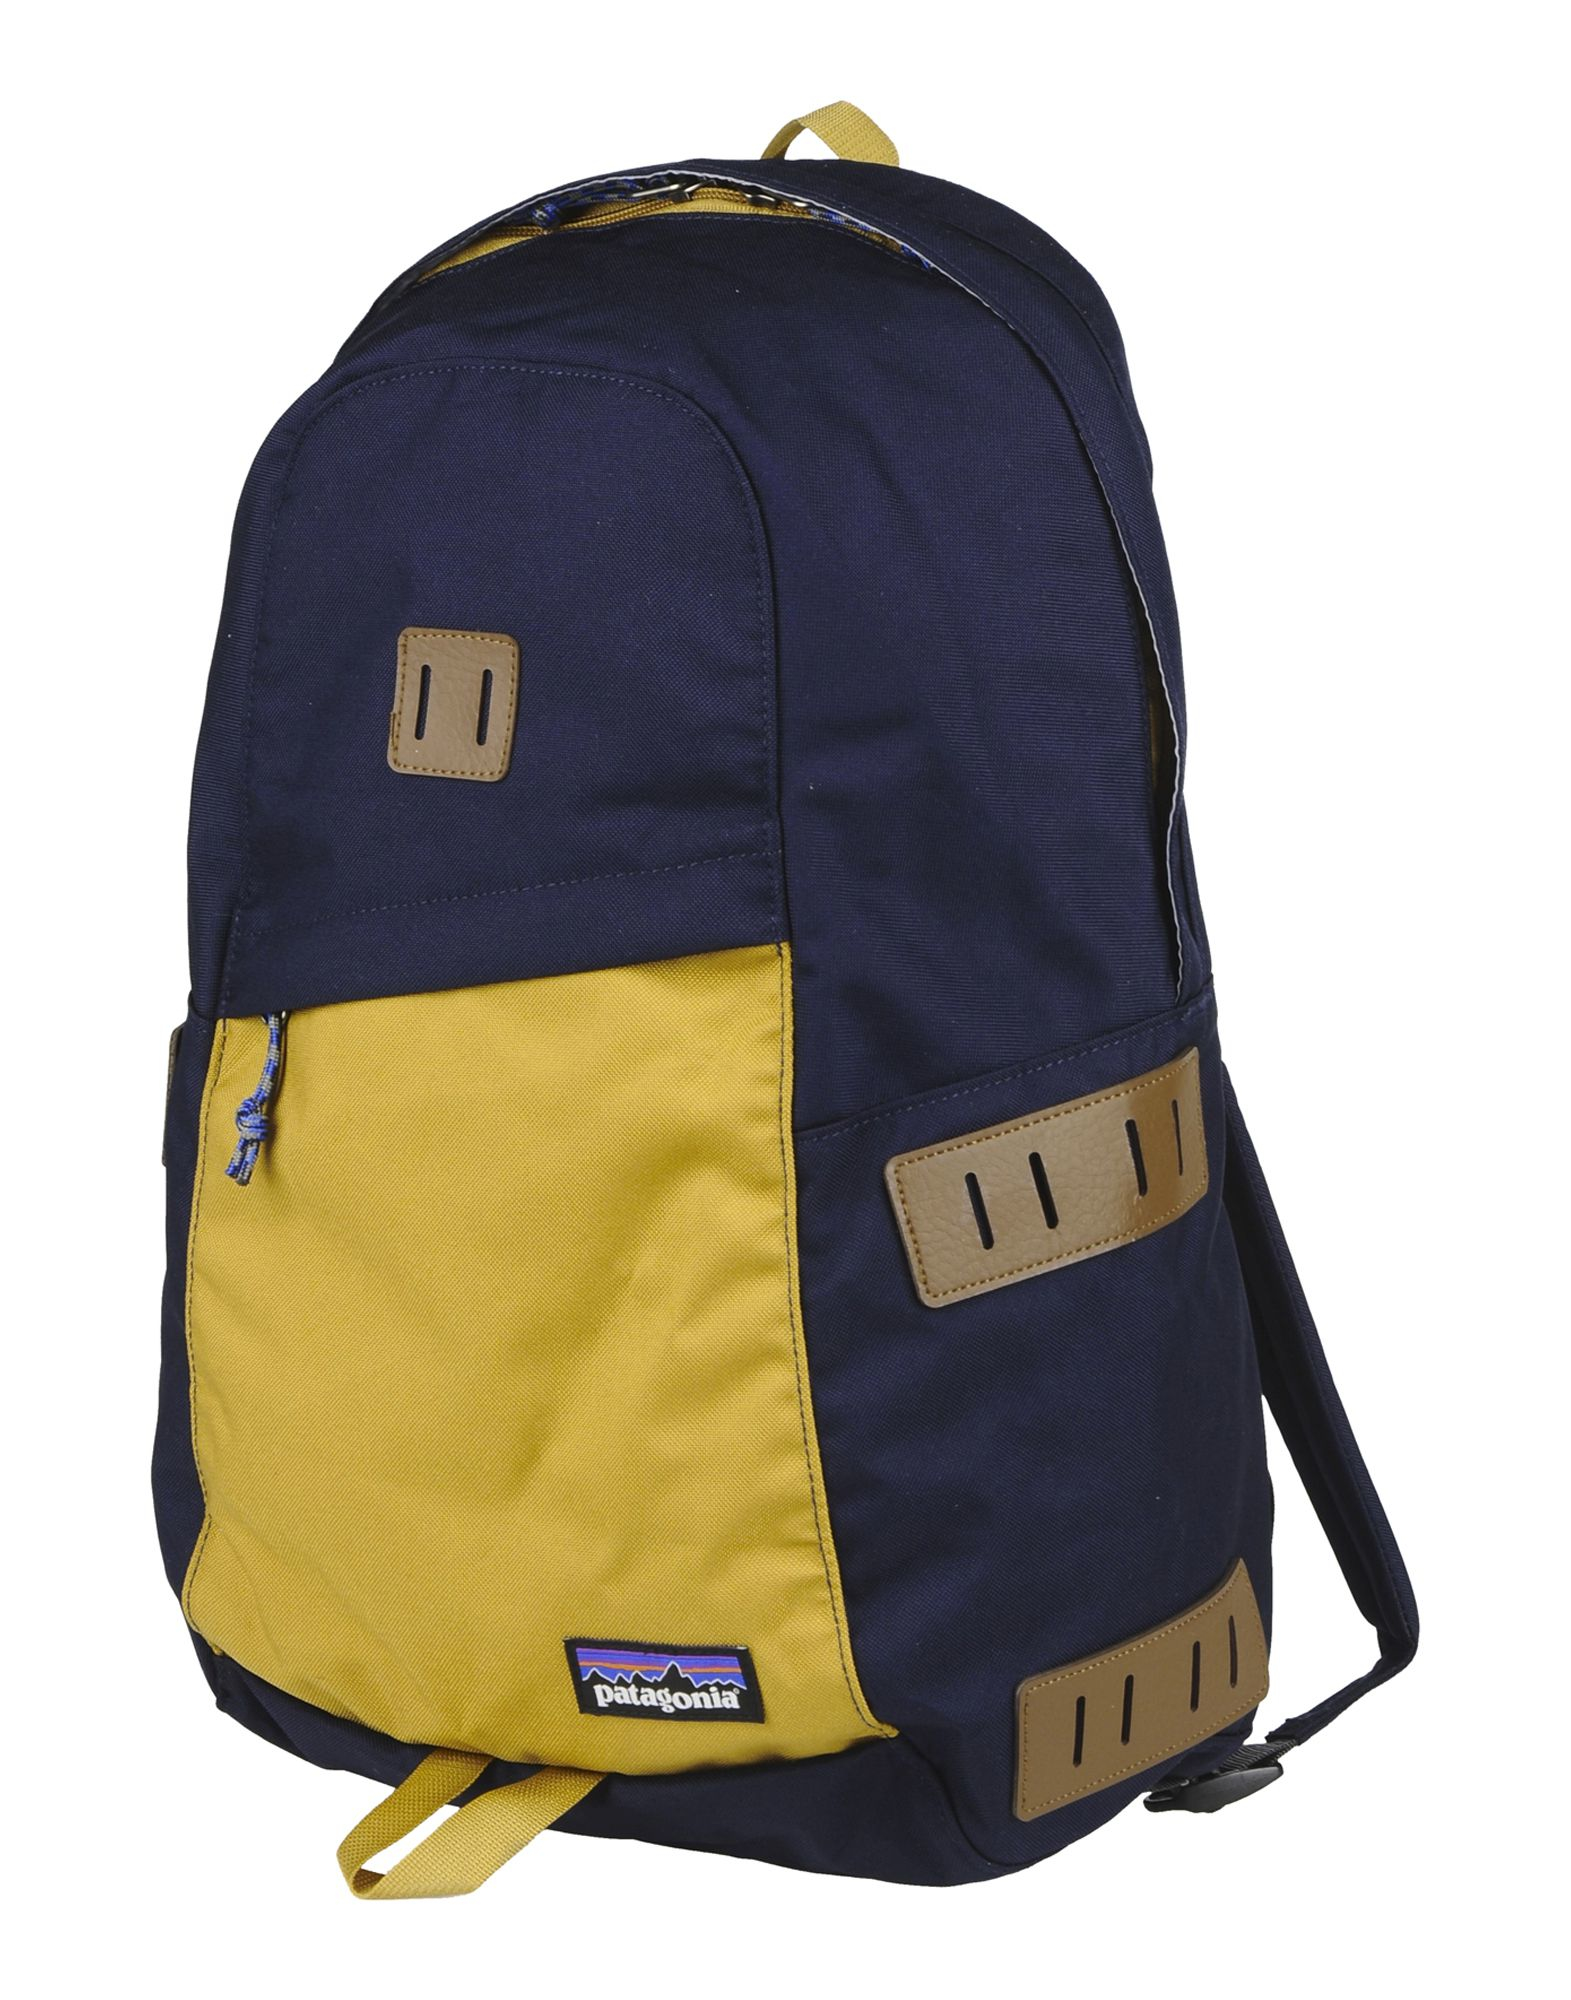 Patagonia Backpacks Amp Fanny Packs In Yellow Lyst